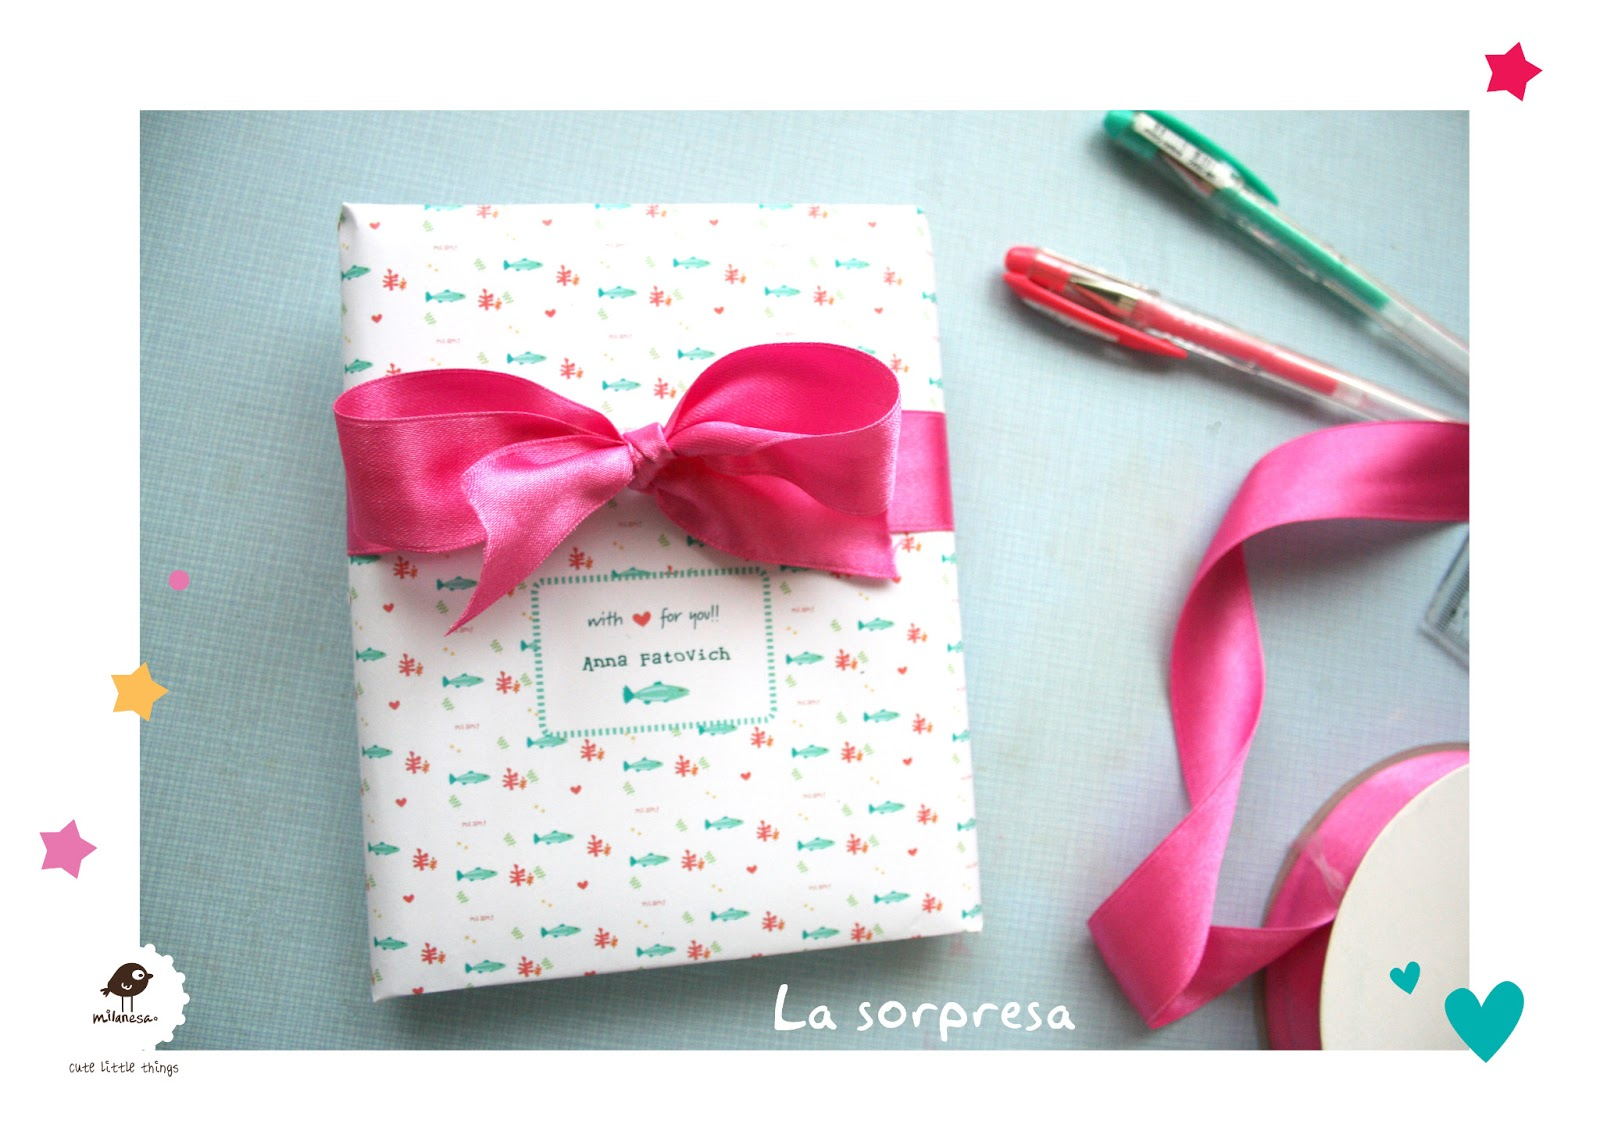 milanesa: Happy mail project: Enero Lila Ruby King